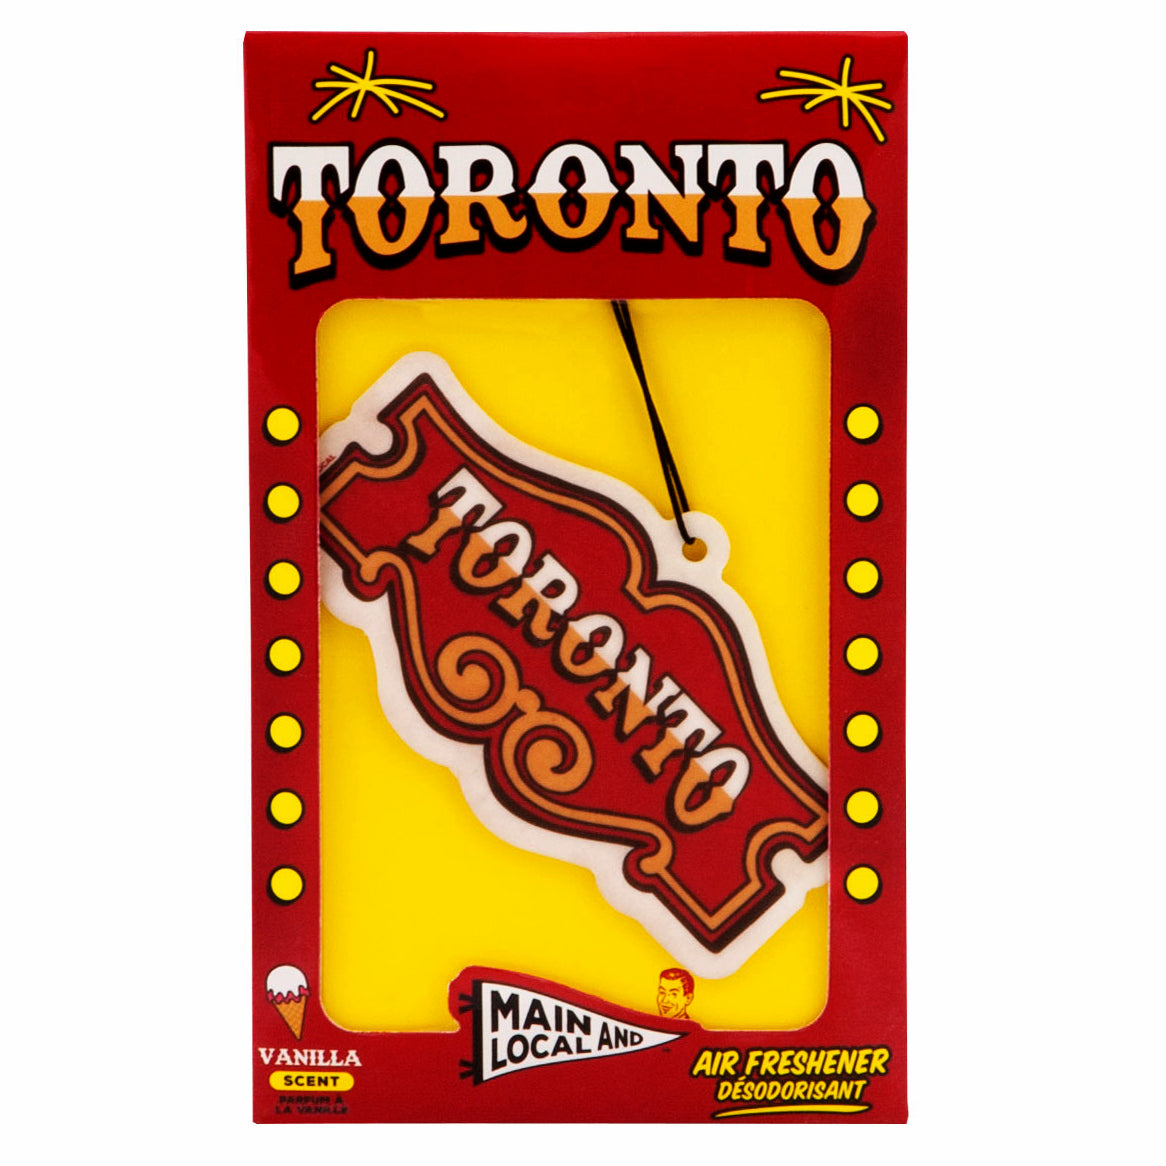 Honest Toronto Air Freshener - Main and Local